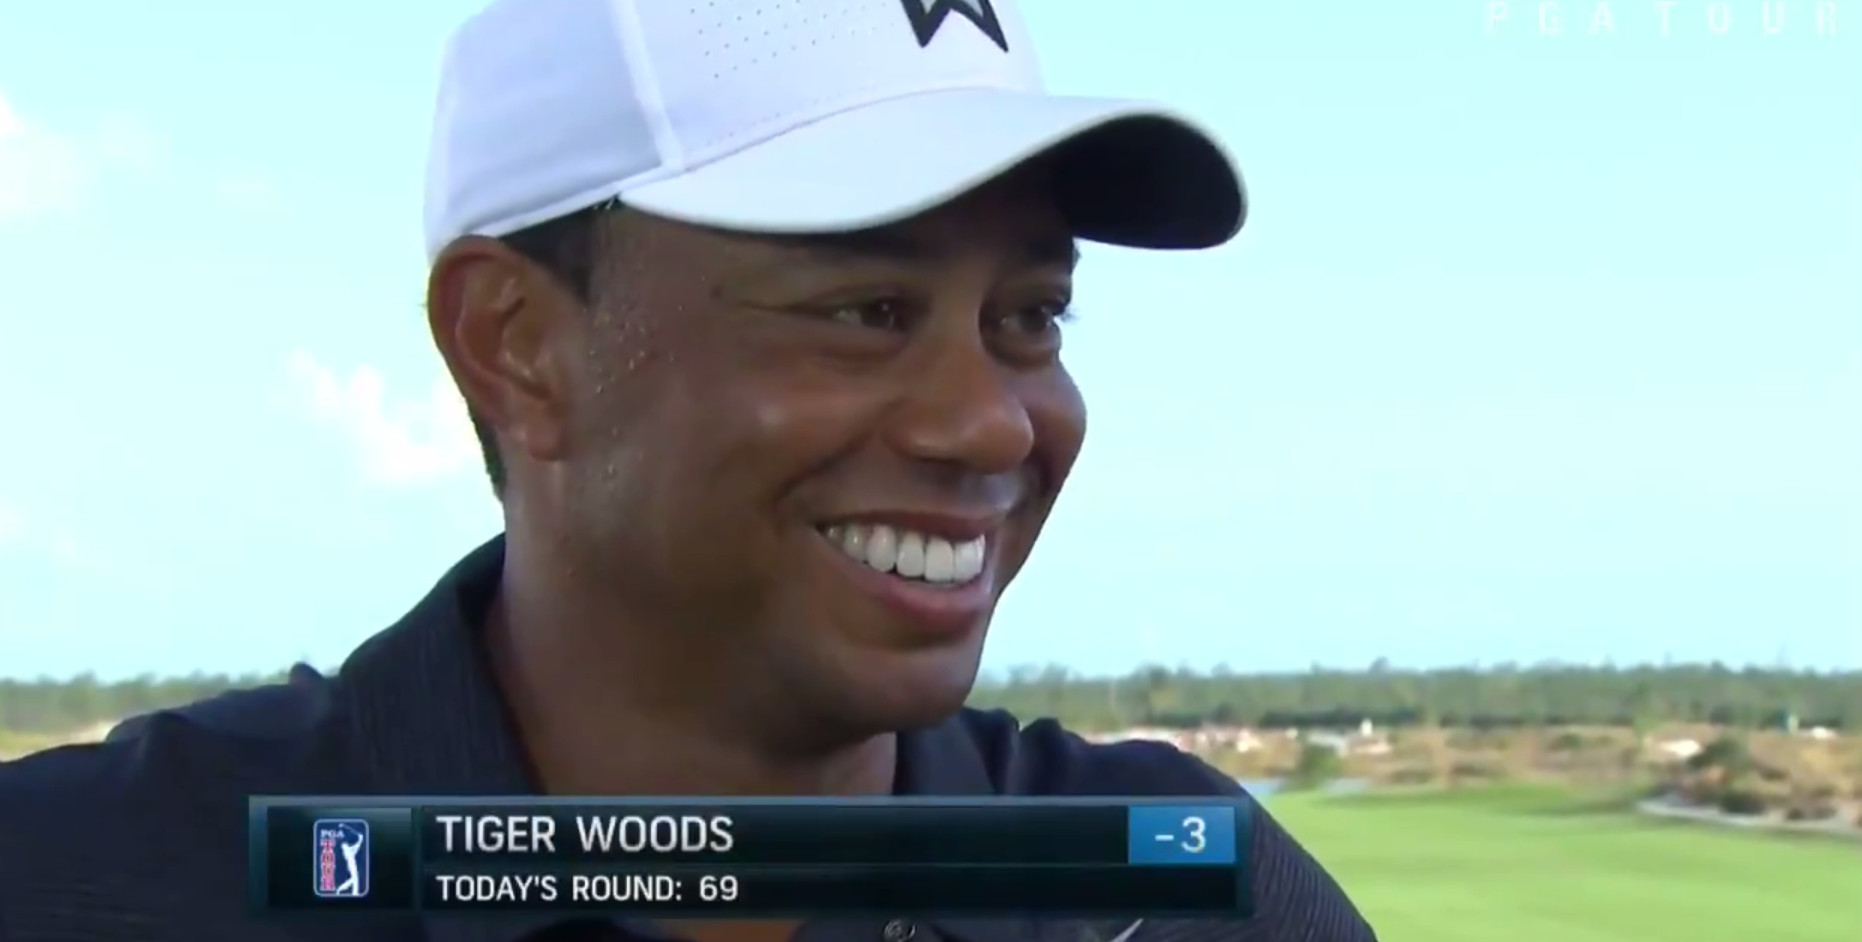 Tiger Woods Hero World Challenge 2017